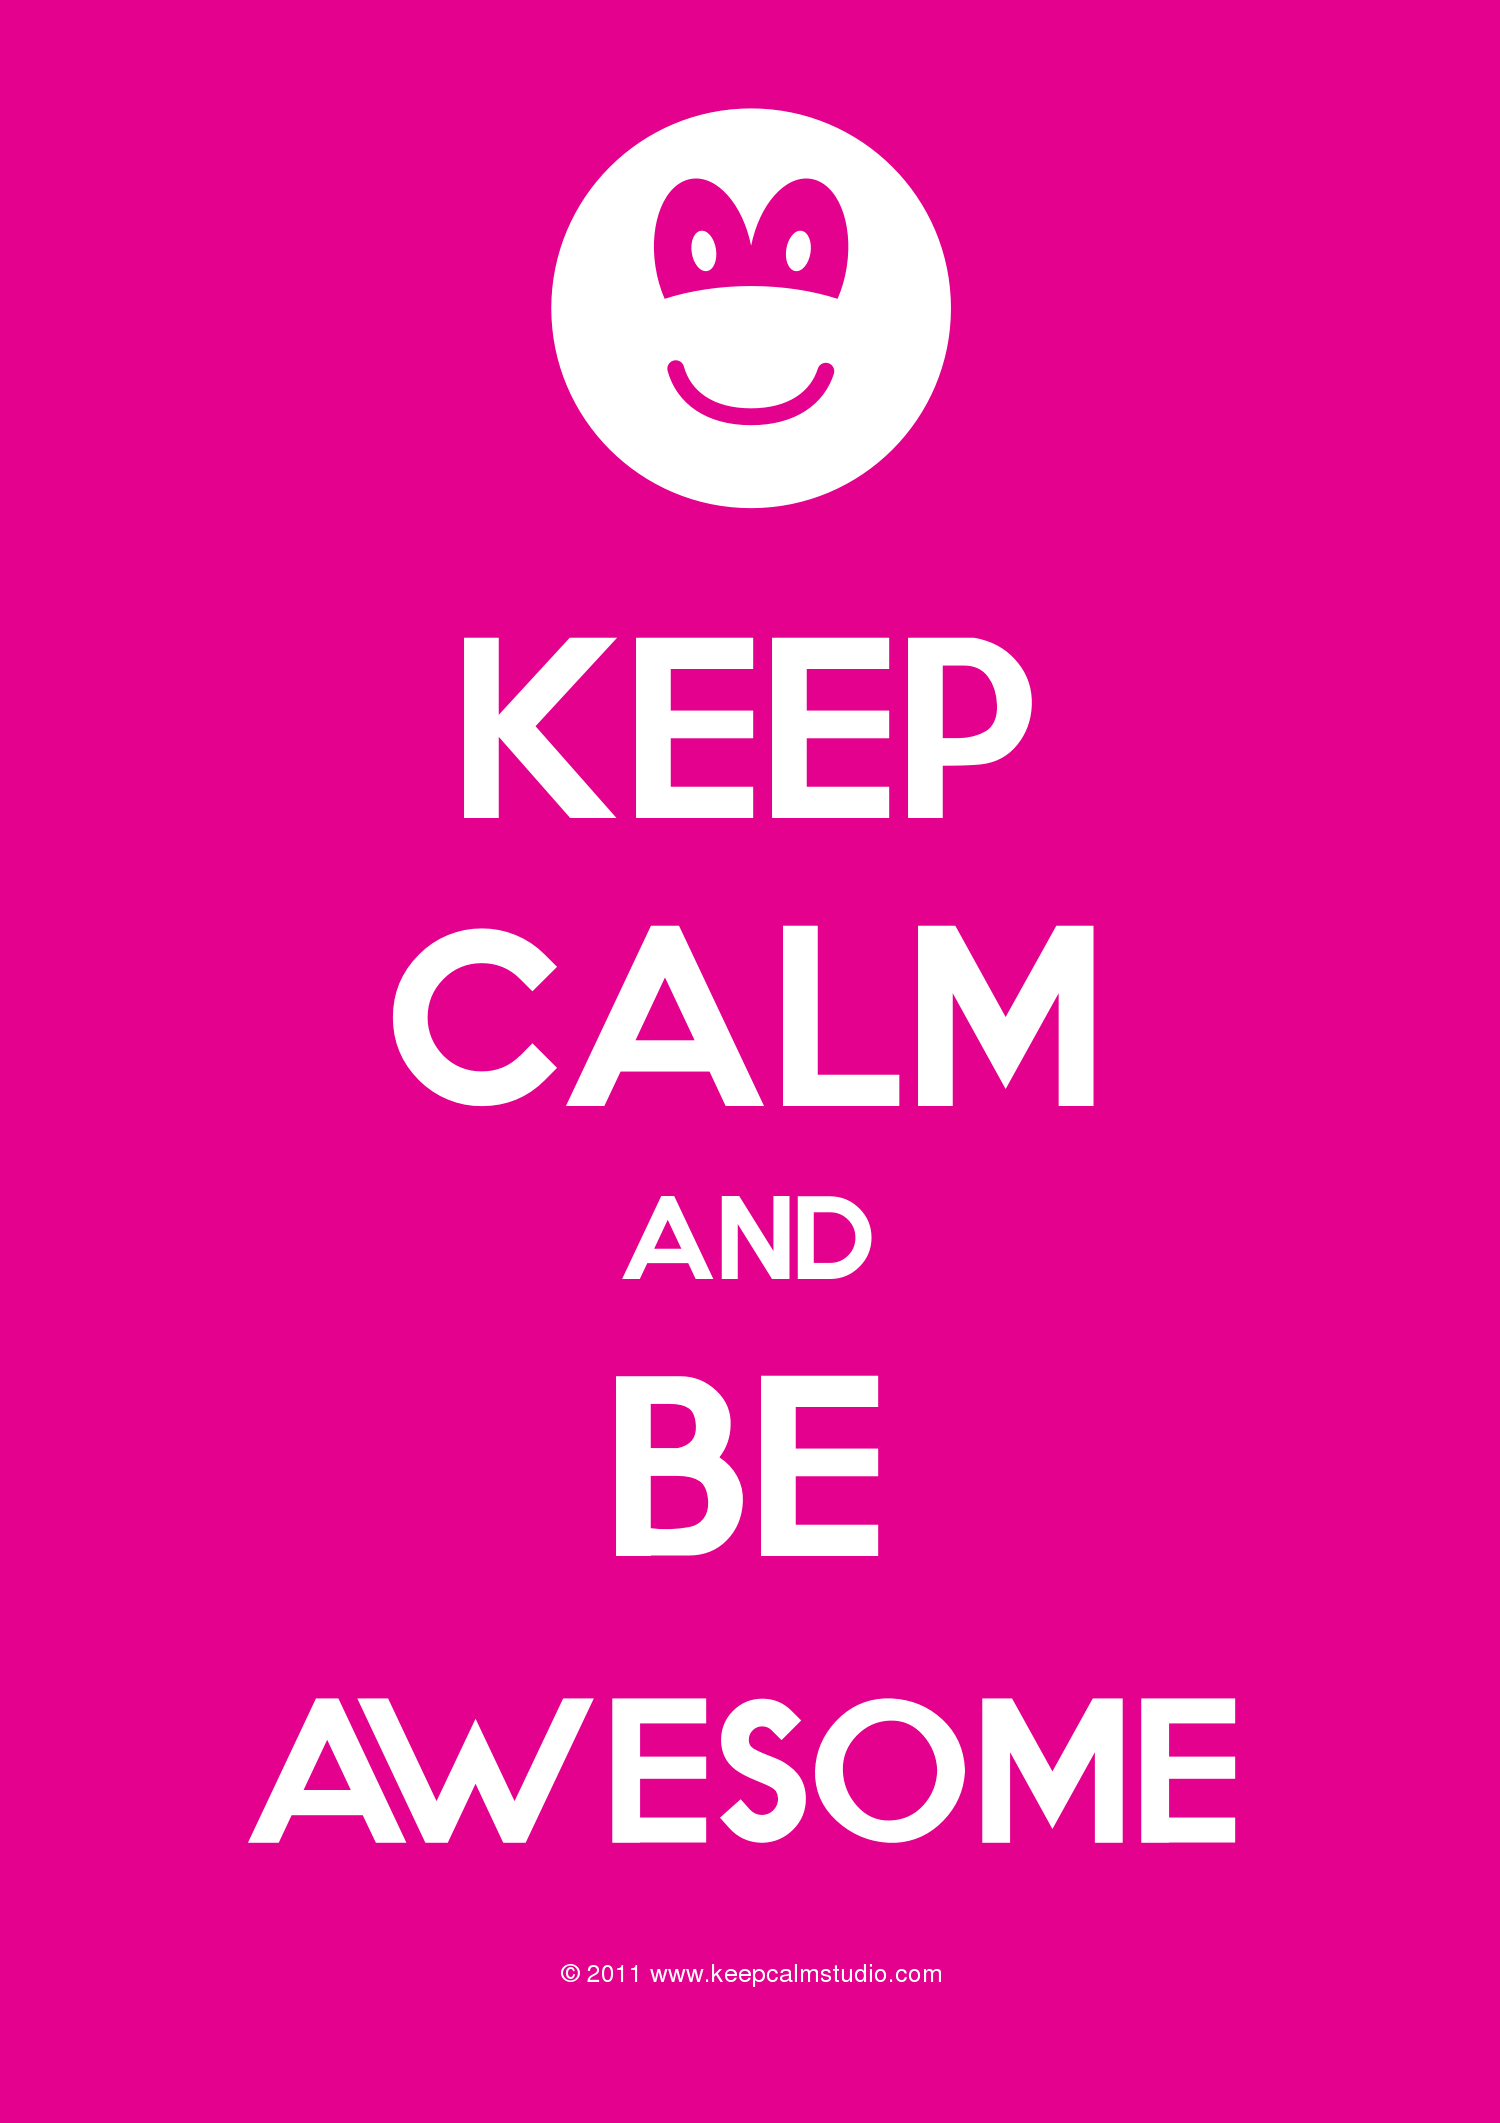 Daddys Girl Wallpaper Keep Calm And Be Awesome Pictures Photos And Images For